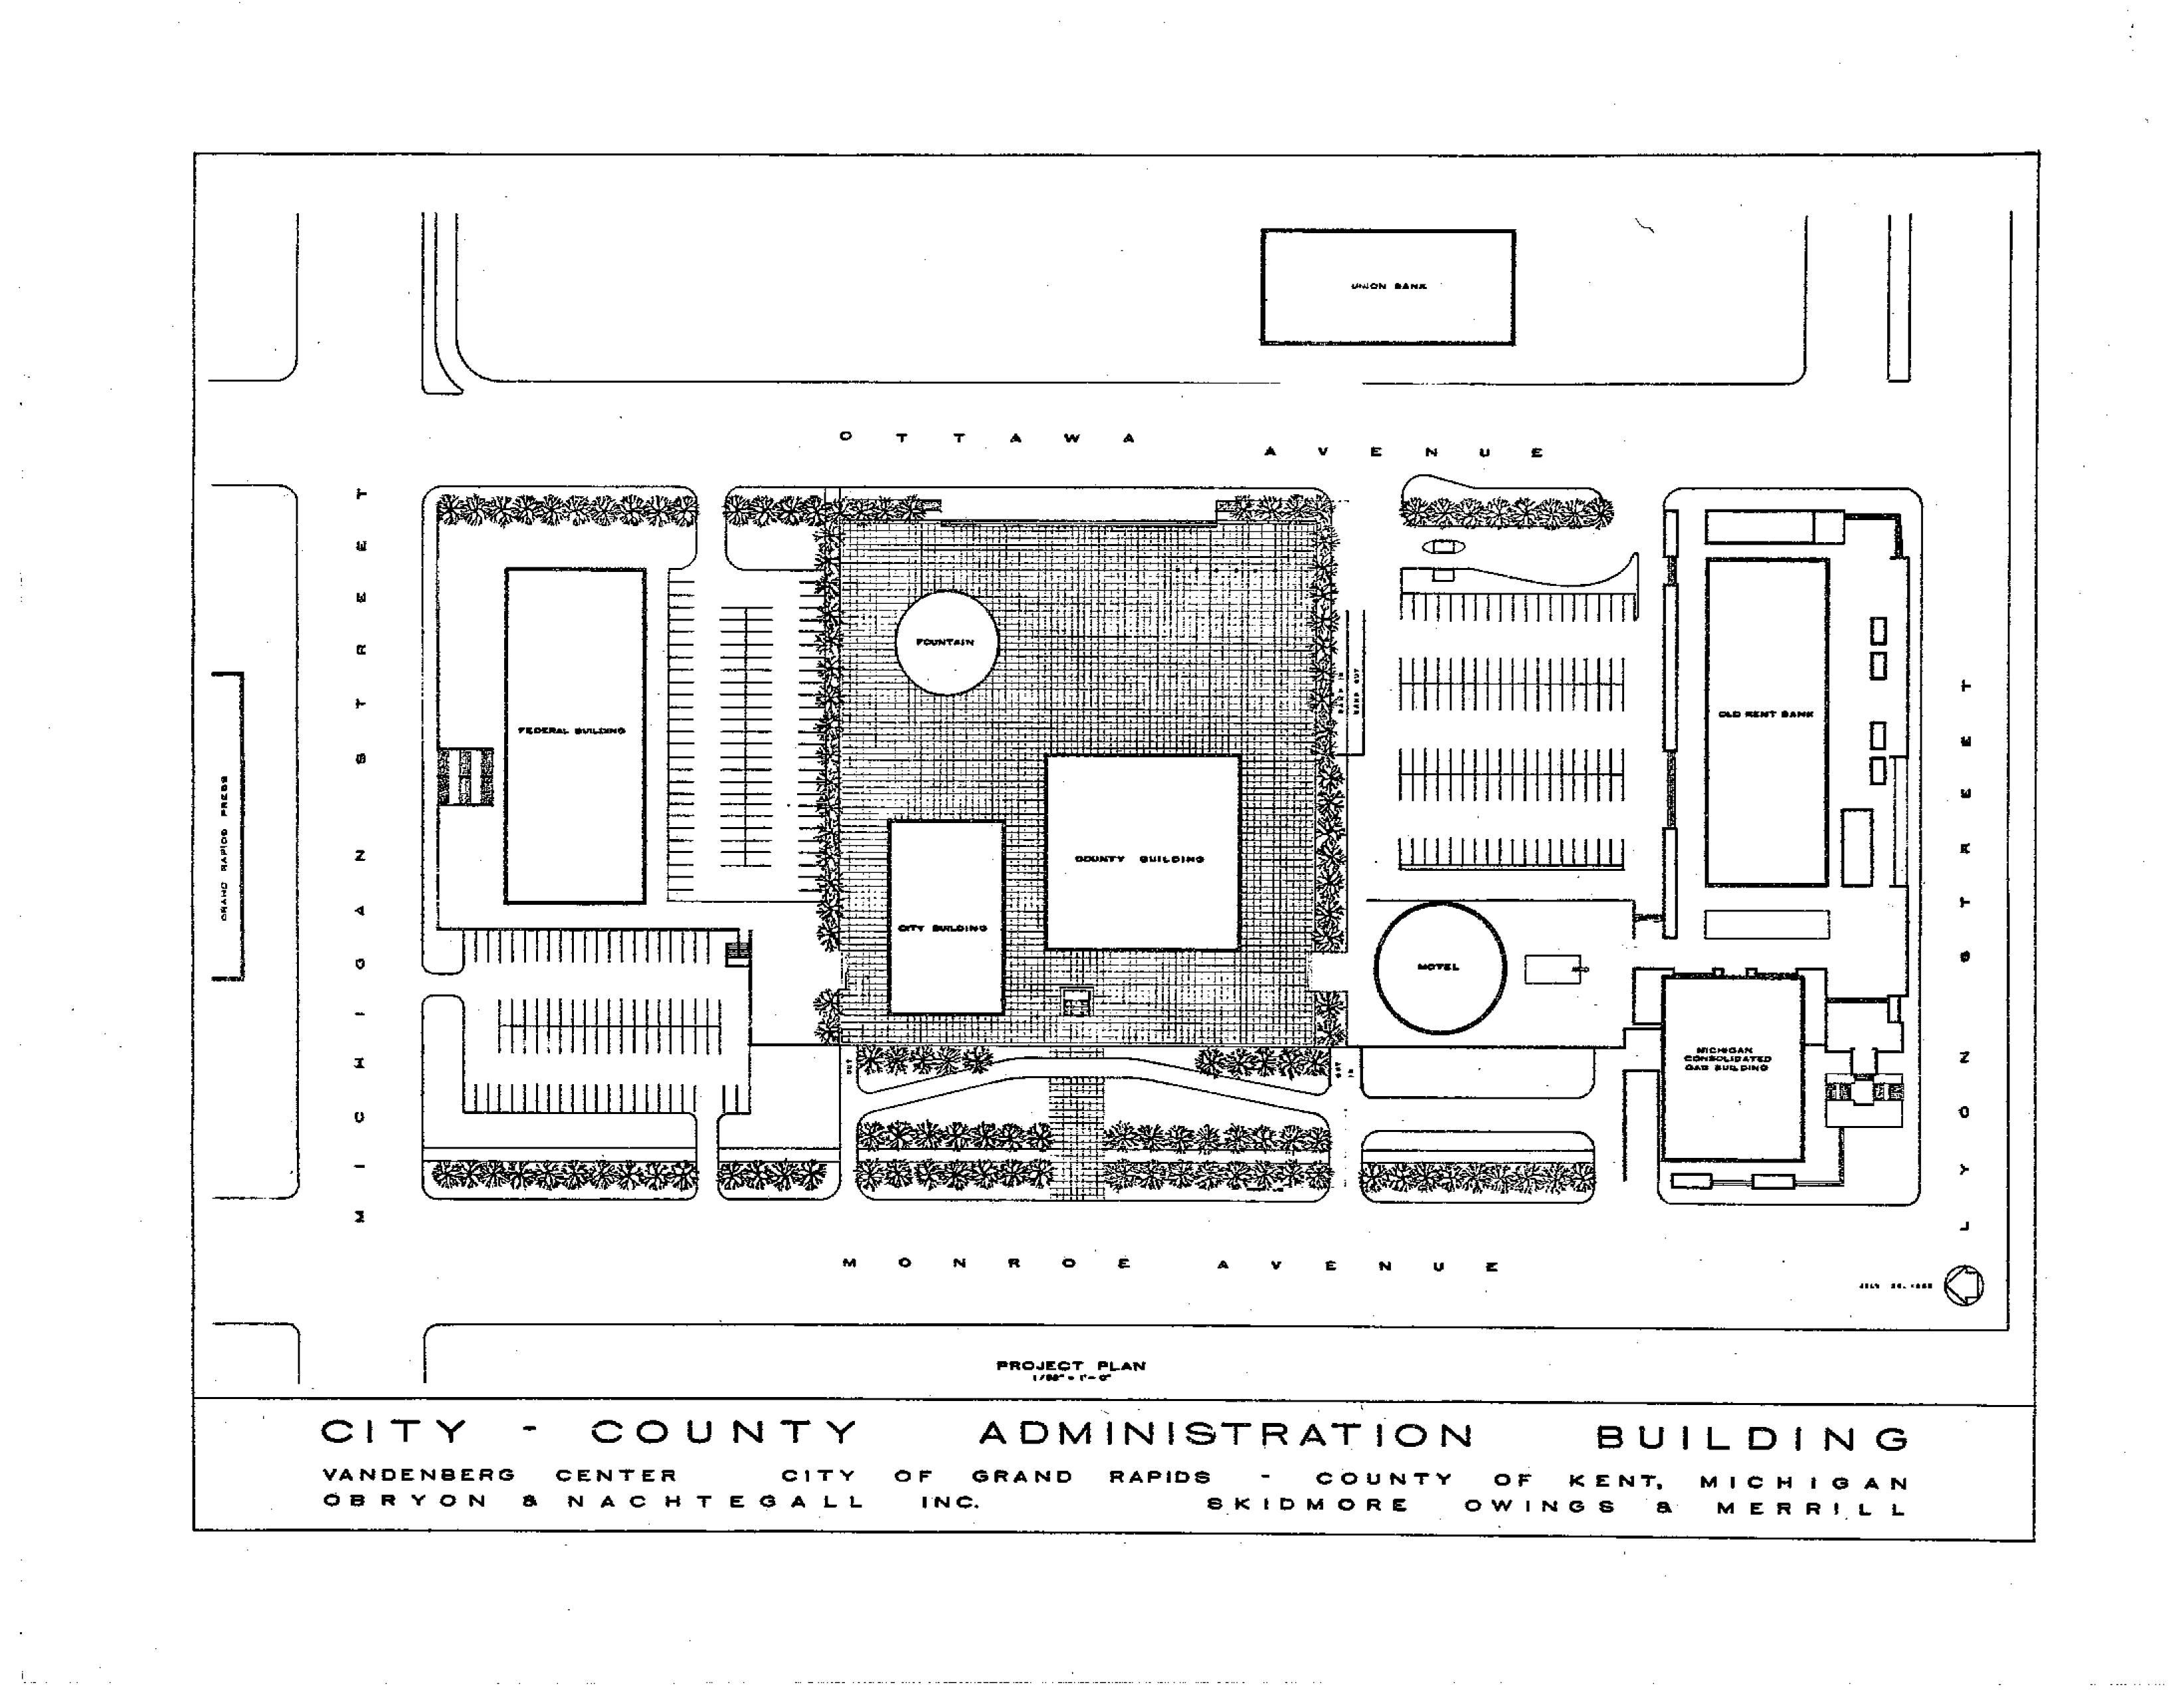 Revitalizing Calder Plaza Downtown Grand Rapids Inc 1998 Nissan Maxima Engine Diagram 1965 Project Plan Of City County Complex Showing Fountain Feature